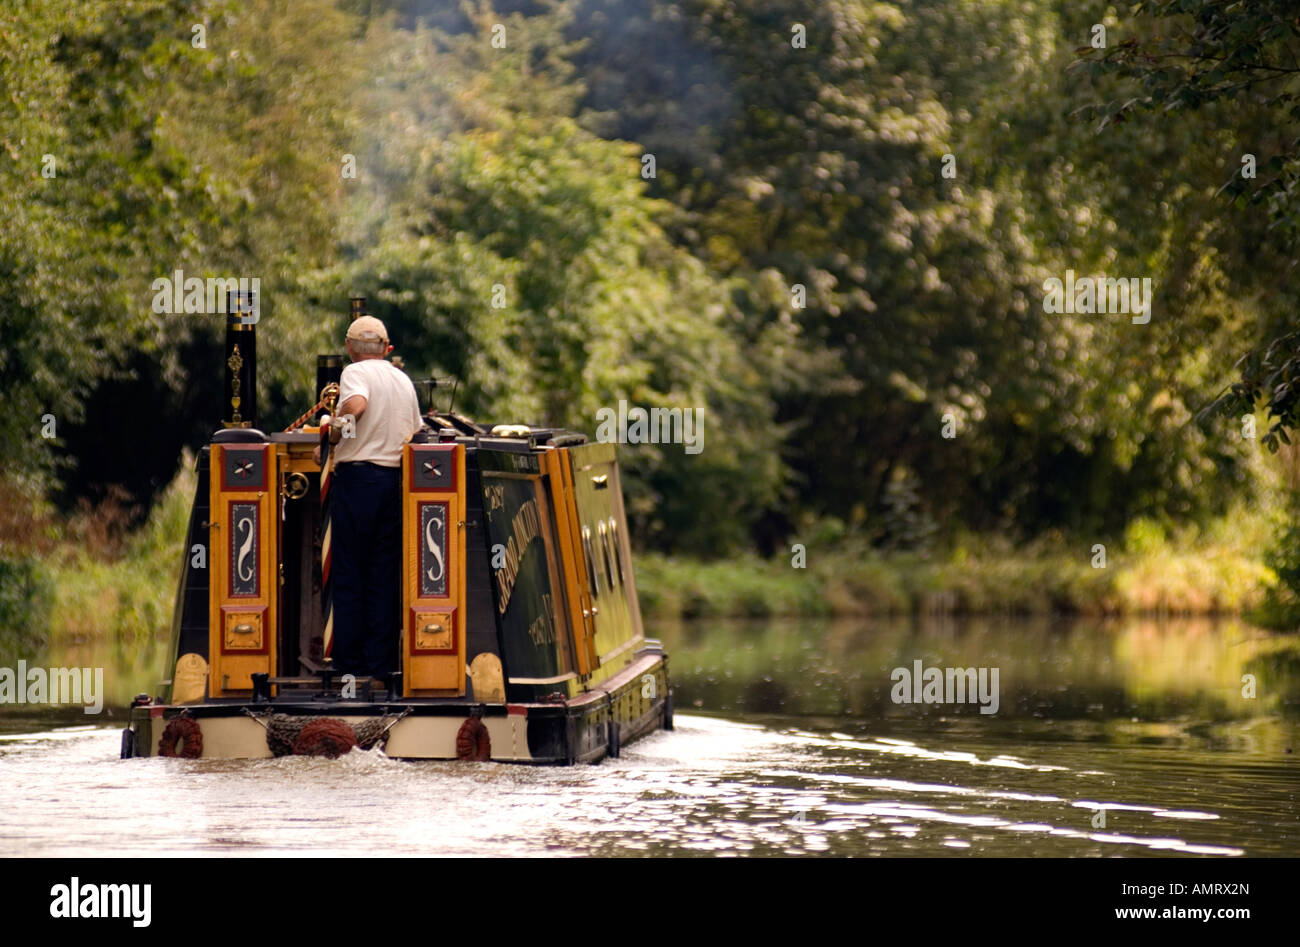 Doug Blane Narrowboat on the canal Stock Photo